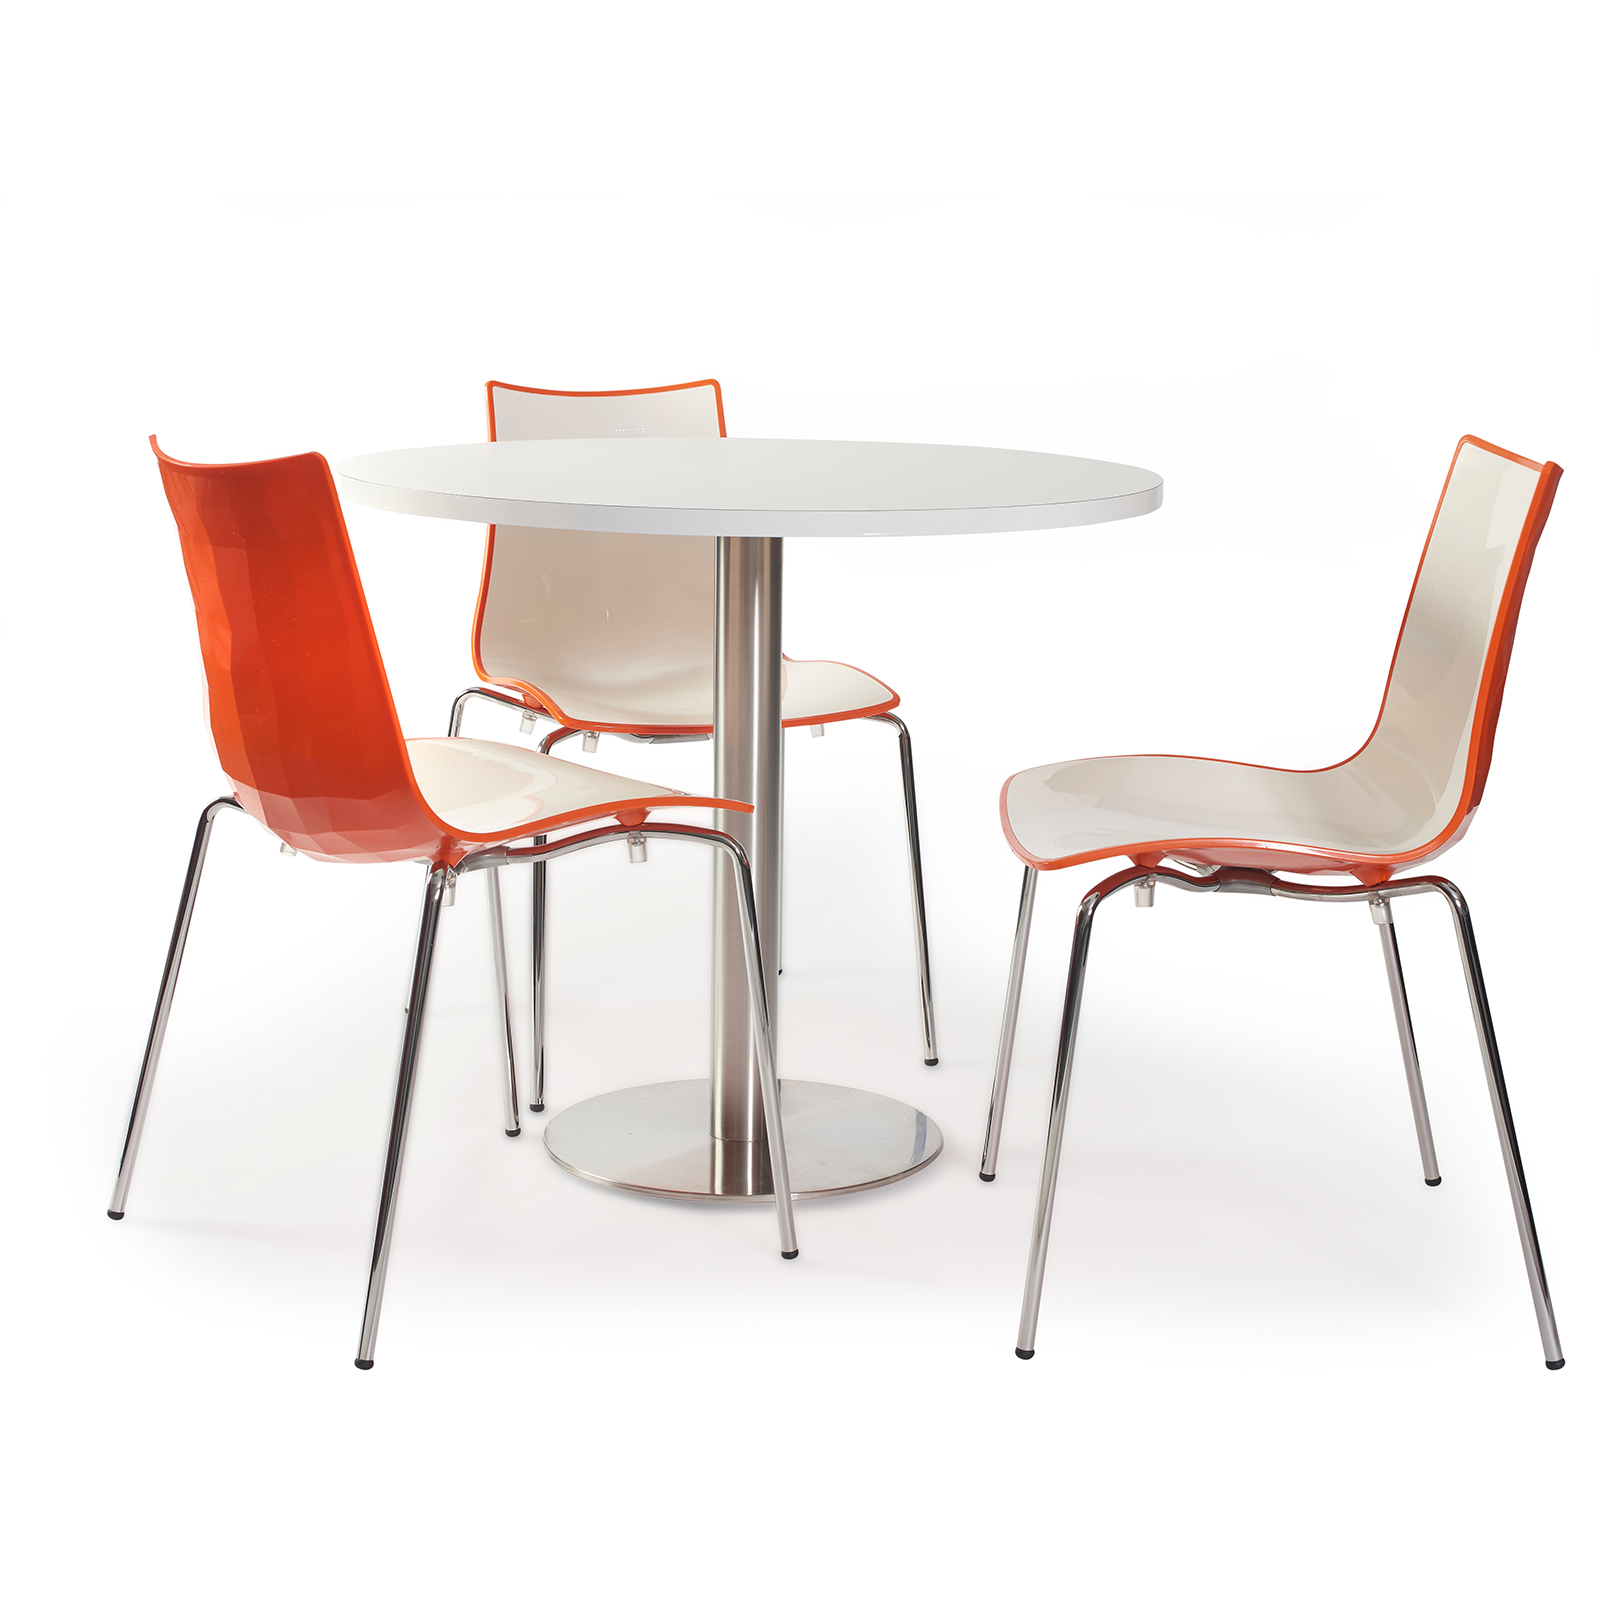 Gecko shell dining stacking chair with chrome legs - orange